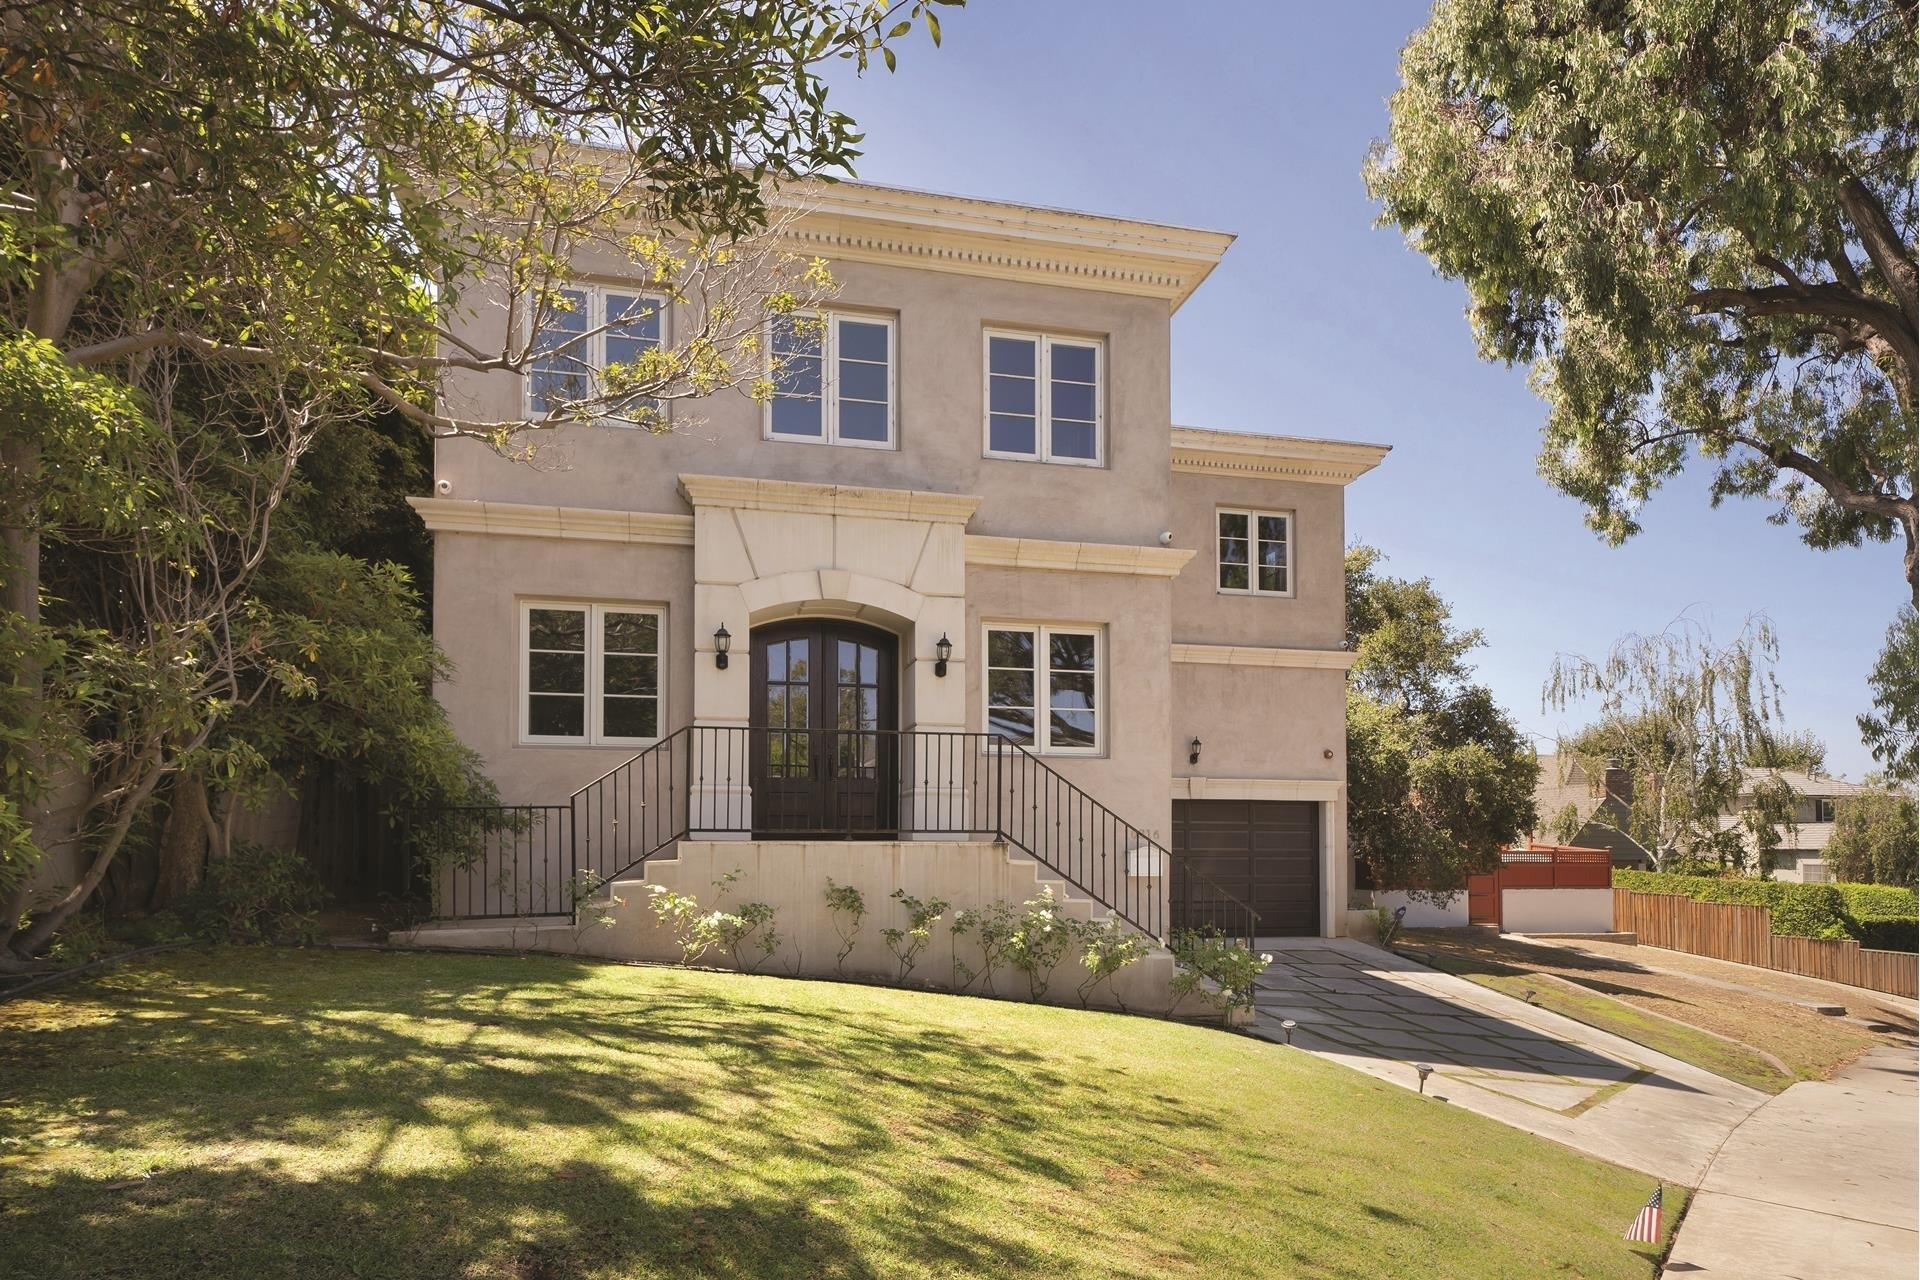 Single Family Home at Cheviot Hills, Los Angeles, CA 90064